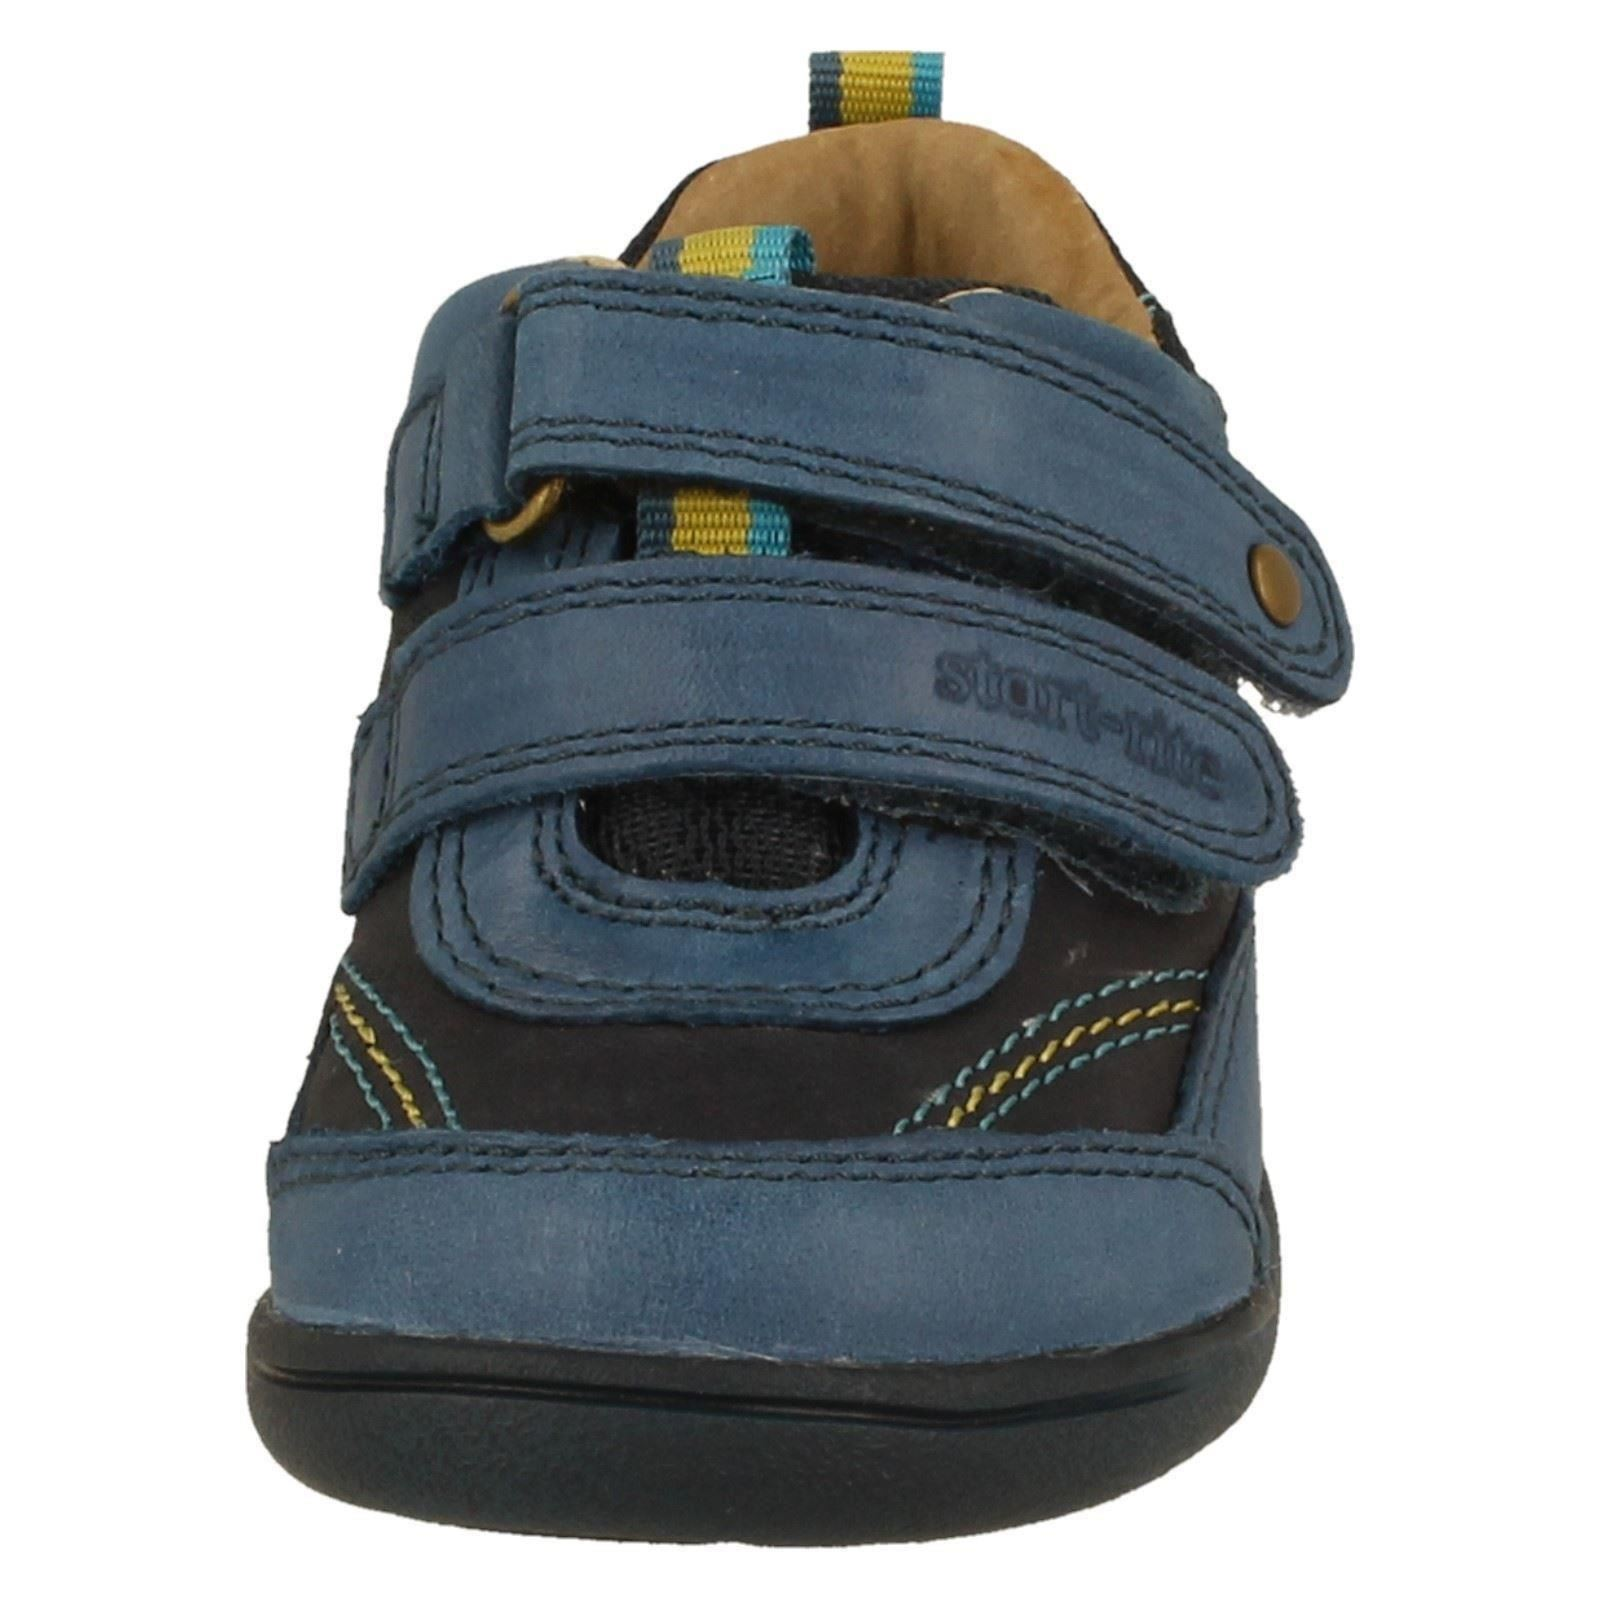 Boys Start Rite Casual Shoes SRSS Leo -W